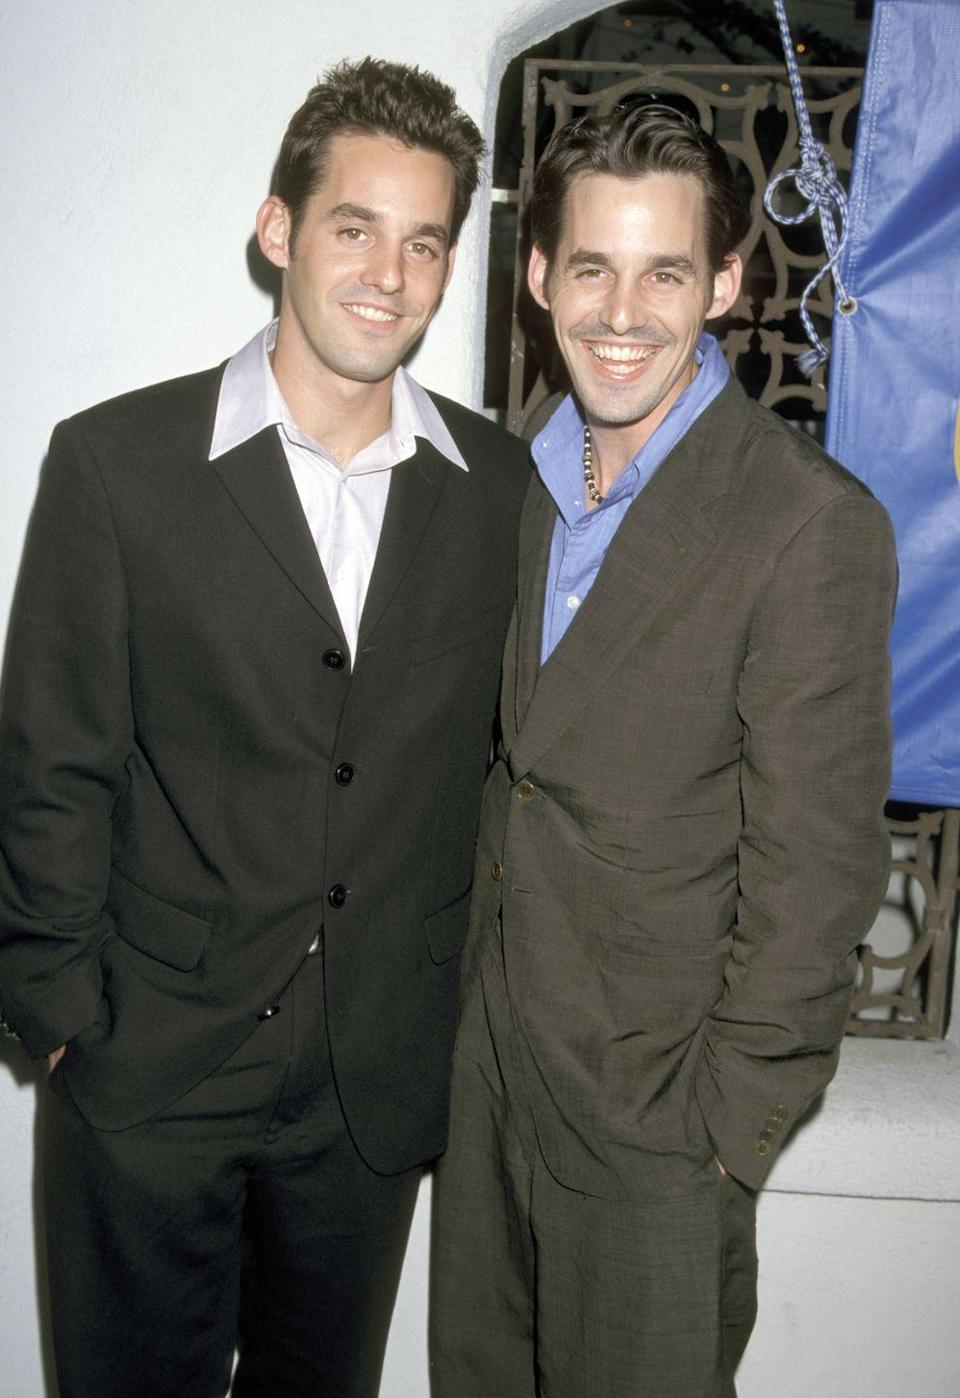 <p>Not only are both of these brothers in the entertainment industry, but Kelly Donovan actually acted as a stand-in for his brother on <em>Buffy: The Vampire Slayer</em> a few times.</p>